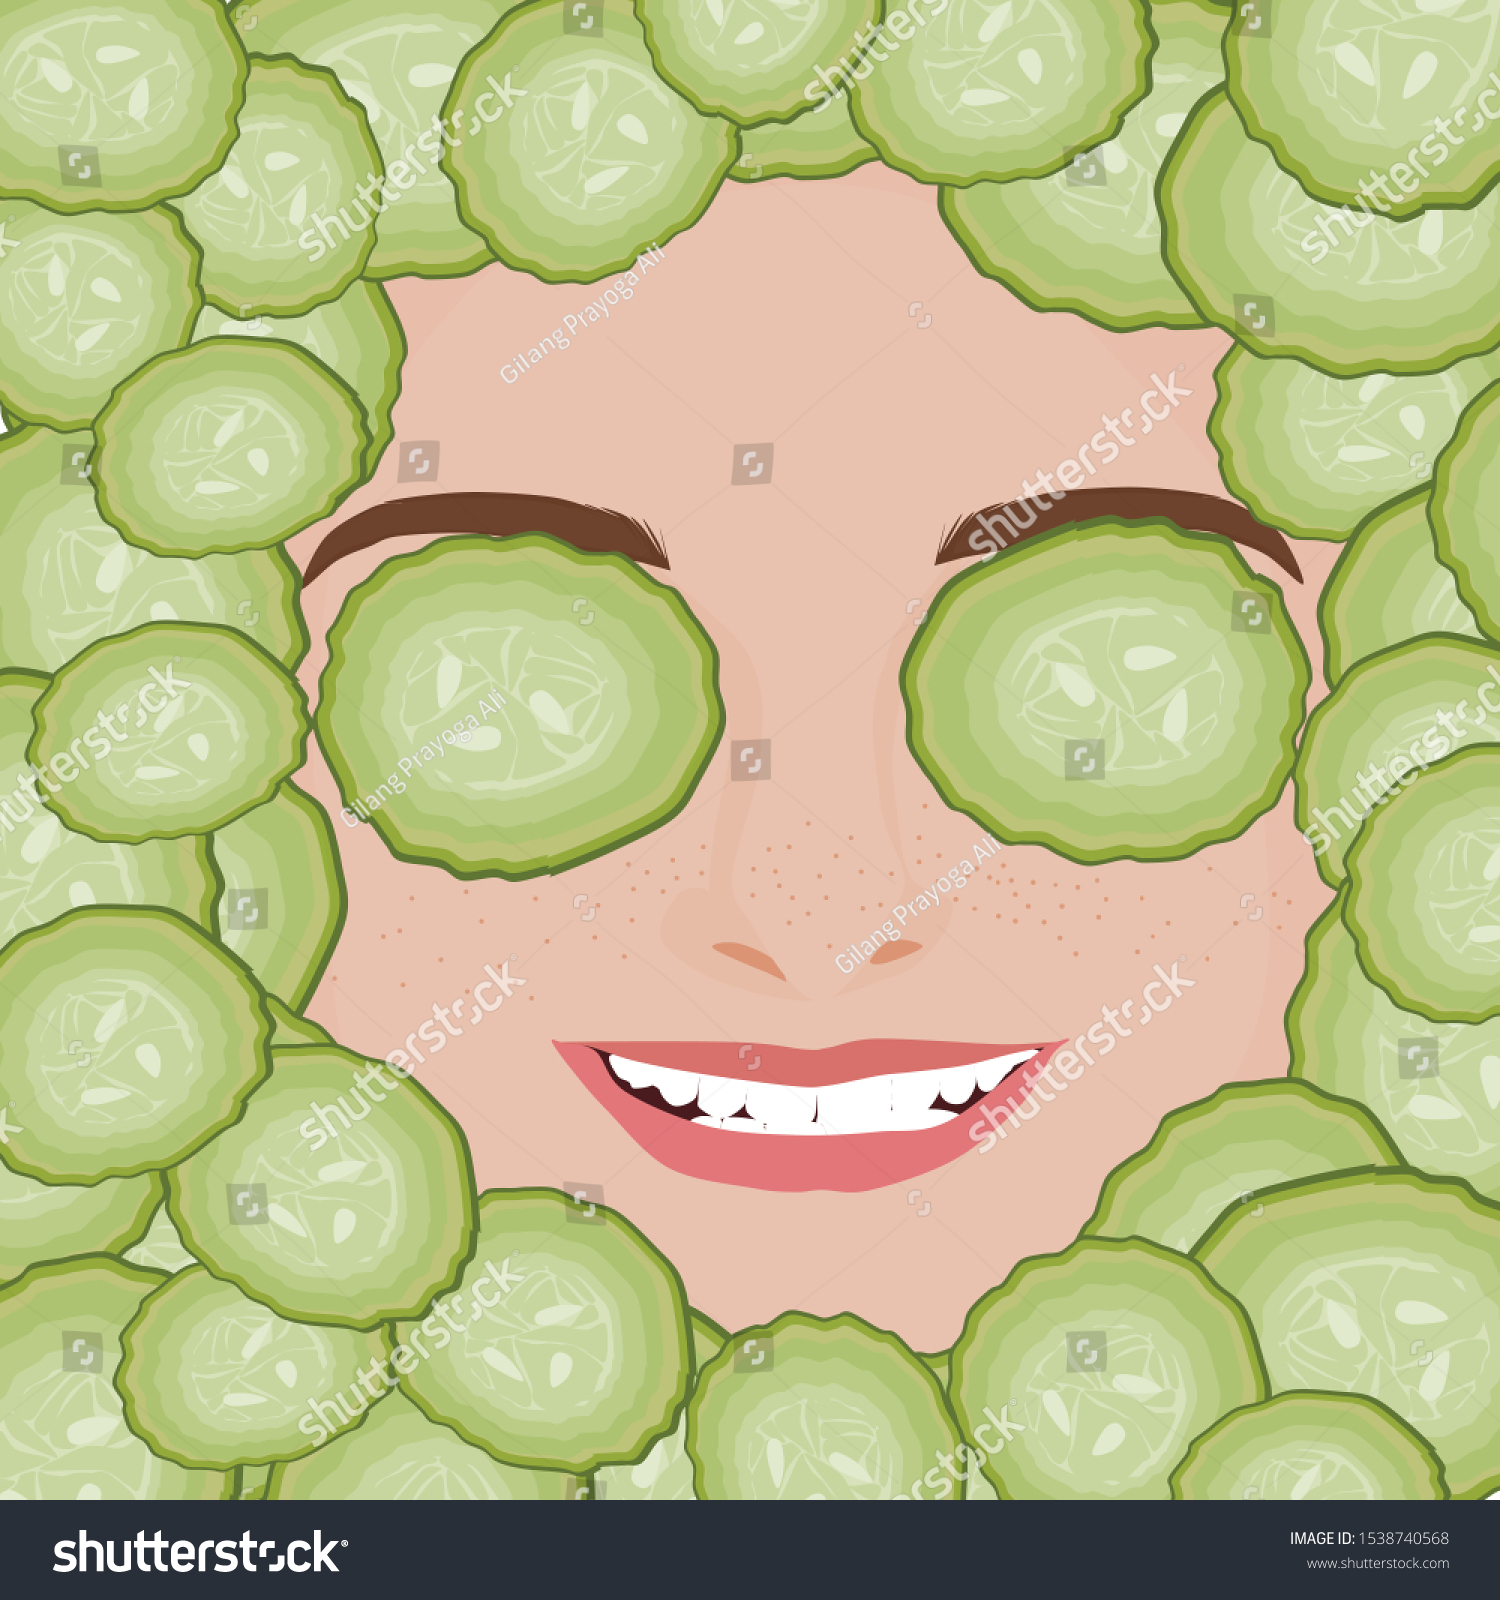 Cute Beautiful Woman Face Cucumber Slice Stock Vector Royalty Free 1538740568